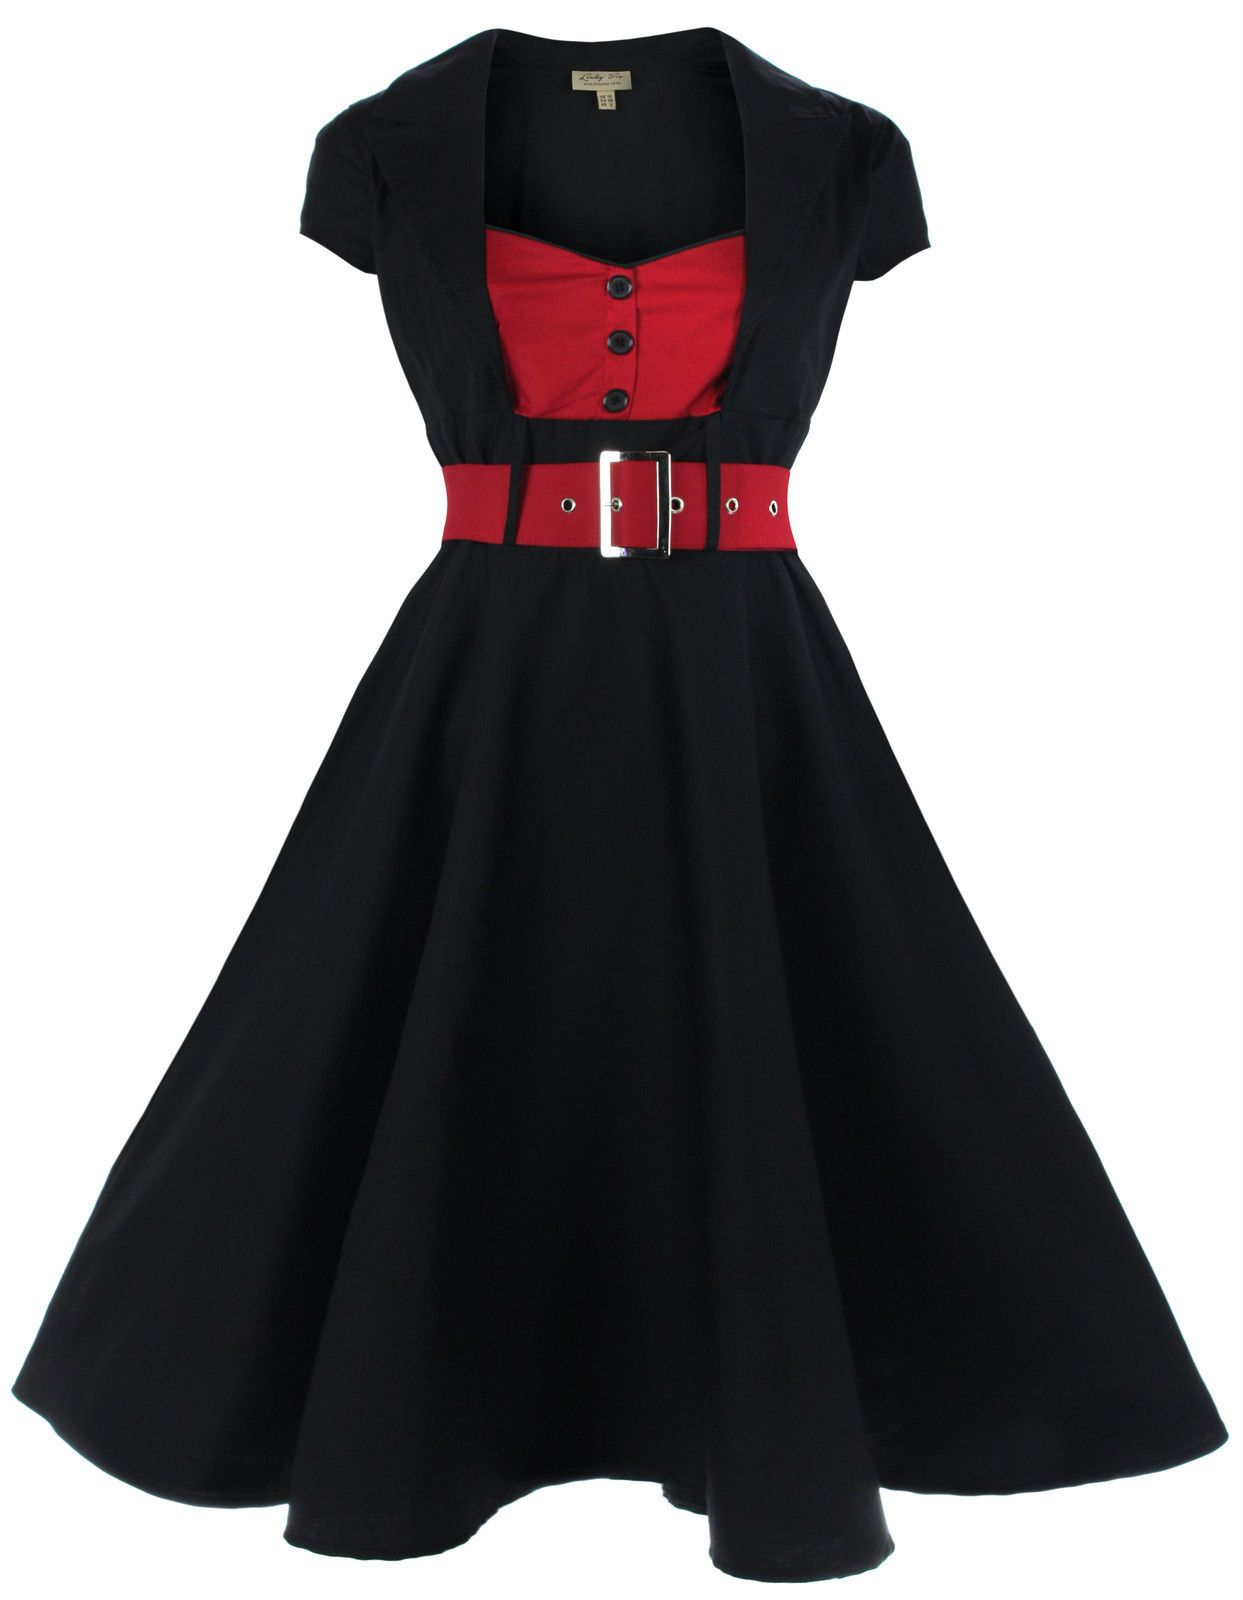 New lindy bop classy vintage us rockabilly pinup flared swing